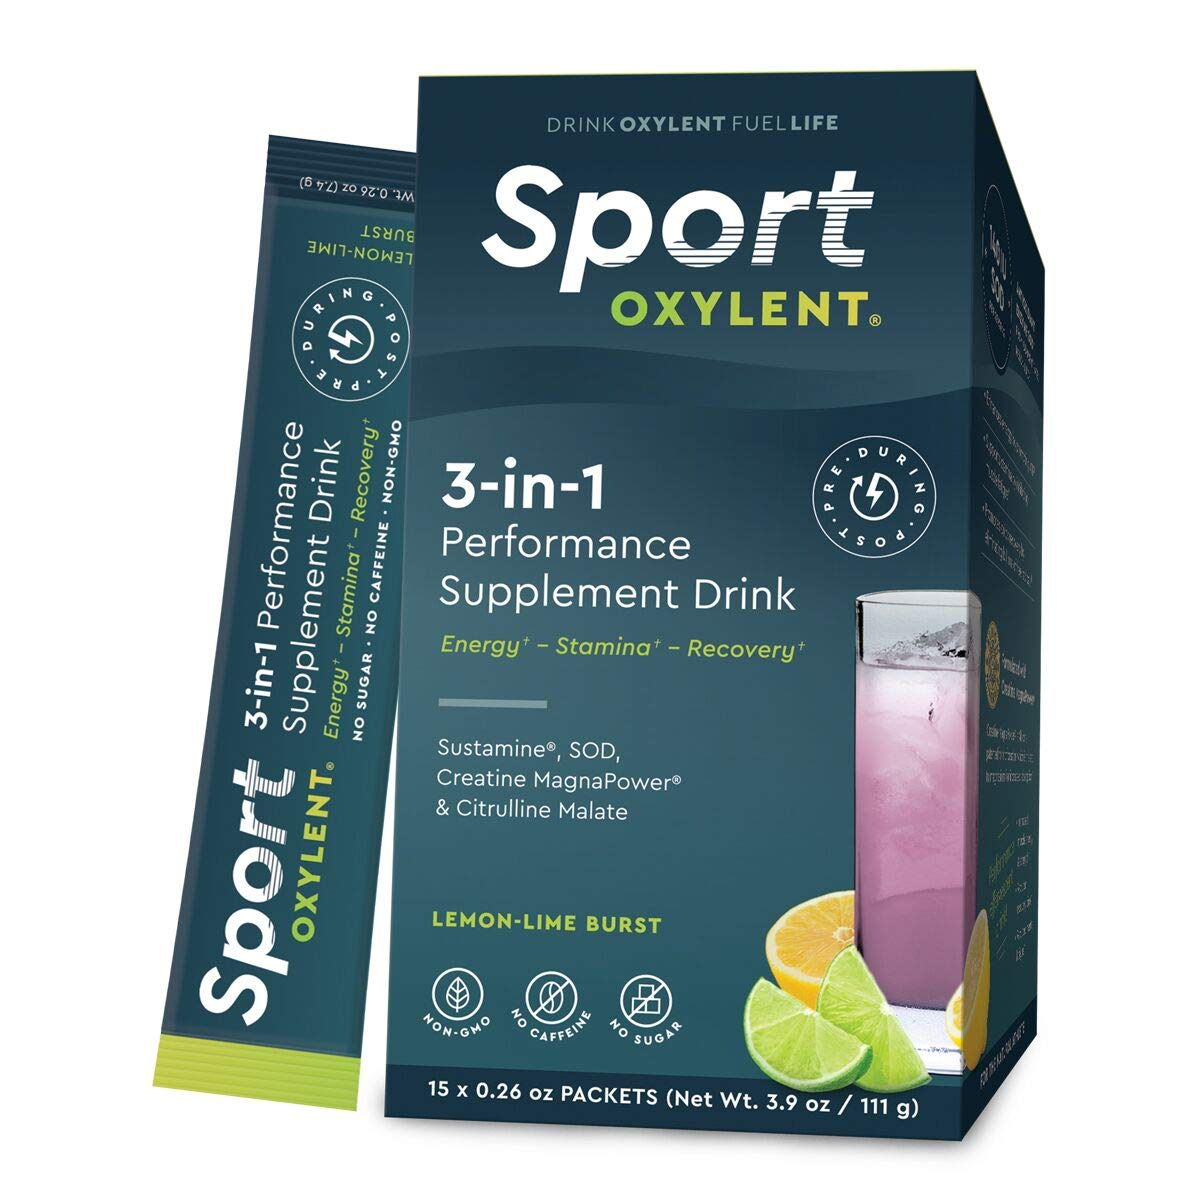 Oxylent Sport 3-in-1 Performance Supplement Drink - Sugar-Free, Effervescent, Easy Absorption of Vitamins, Creatine Minerals, Natural Energy, Supports Stamina, Lemon-Lime Burst Flavor, 15 Count